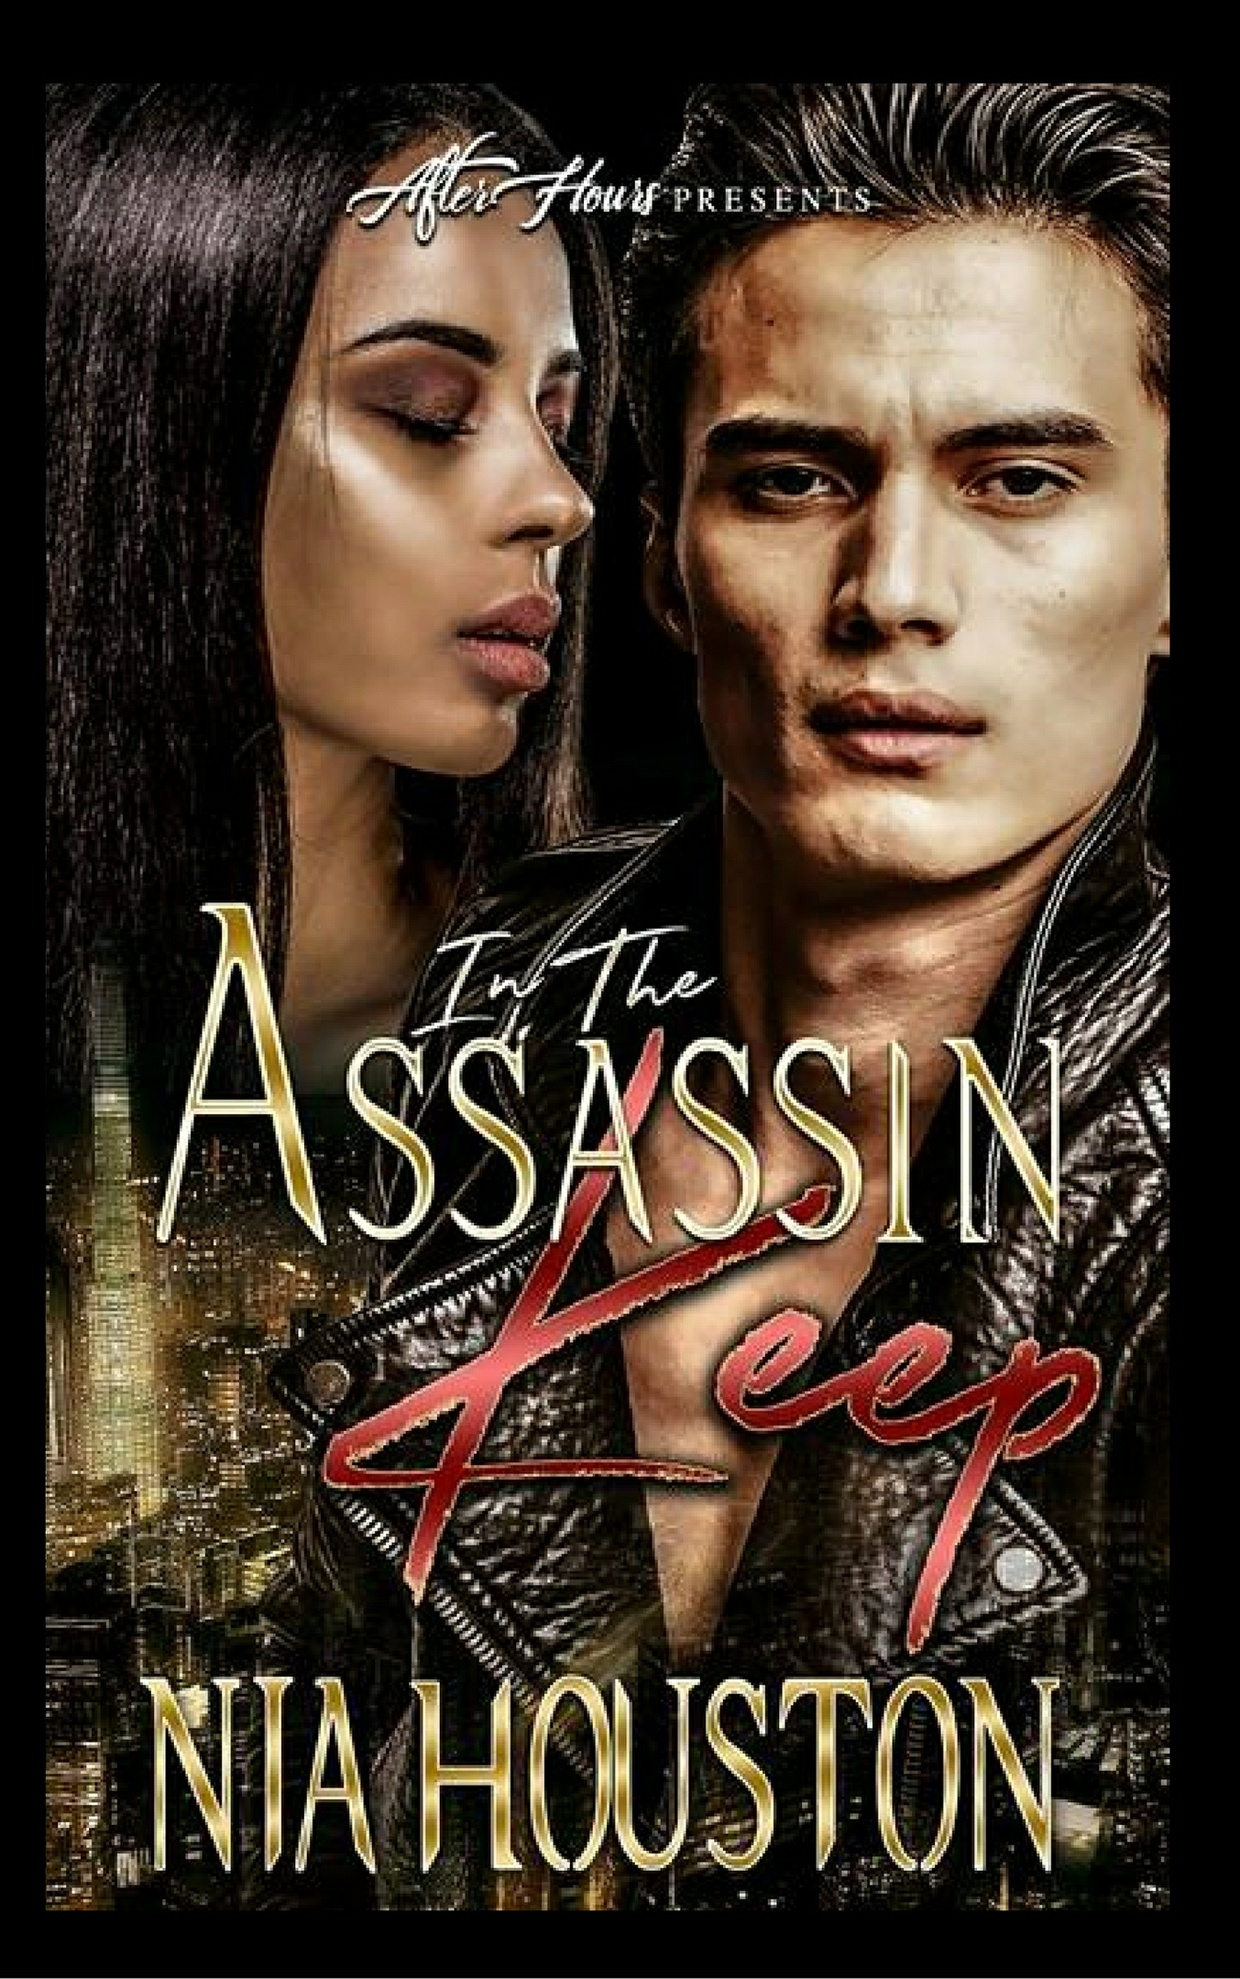 In The Assassin Keep